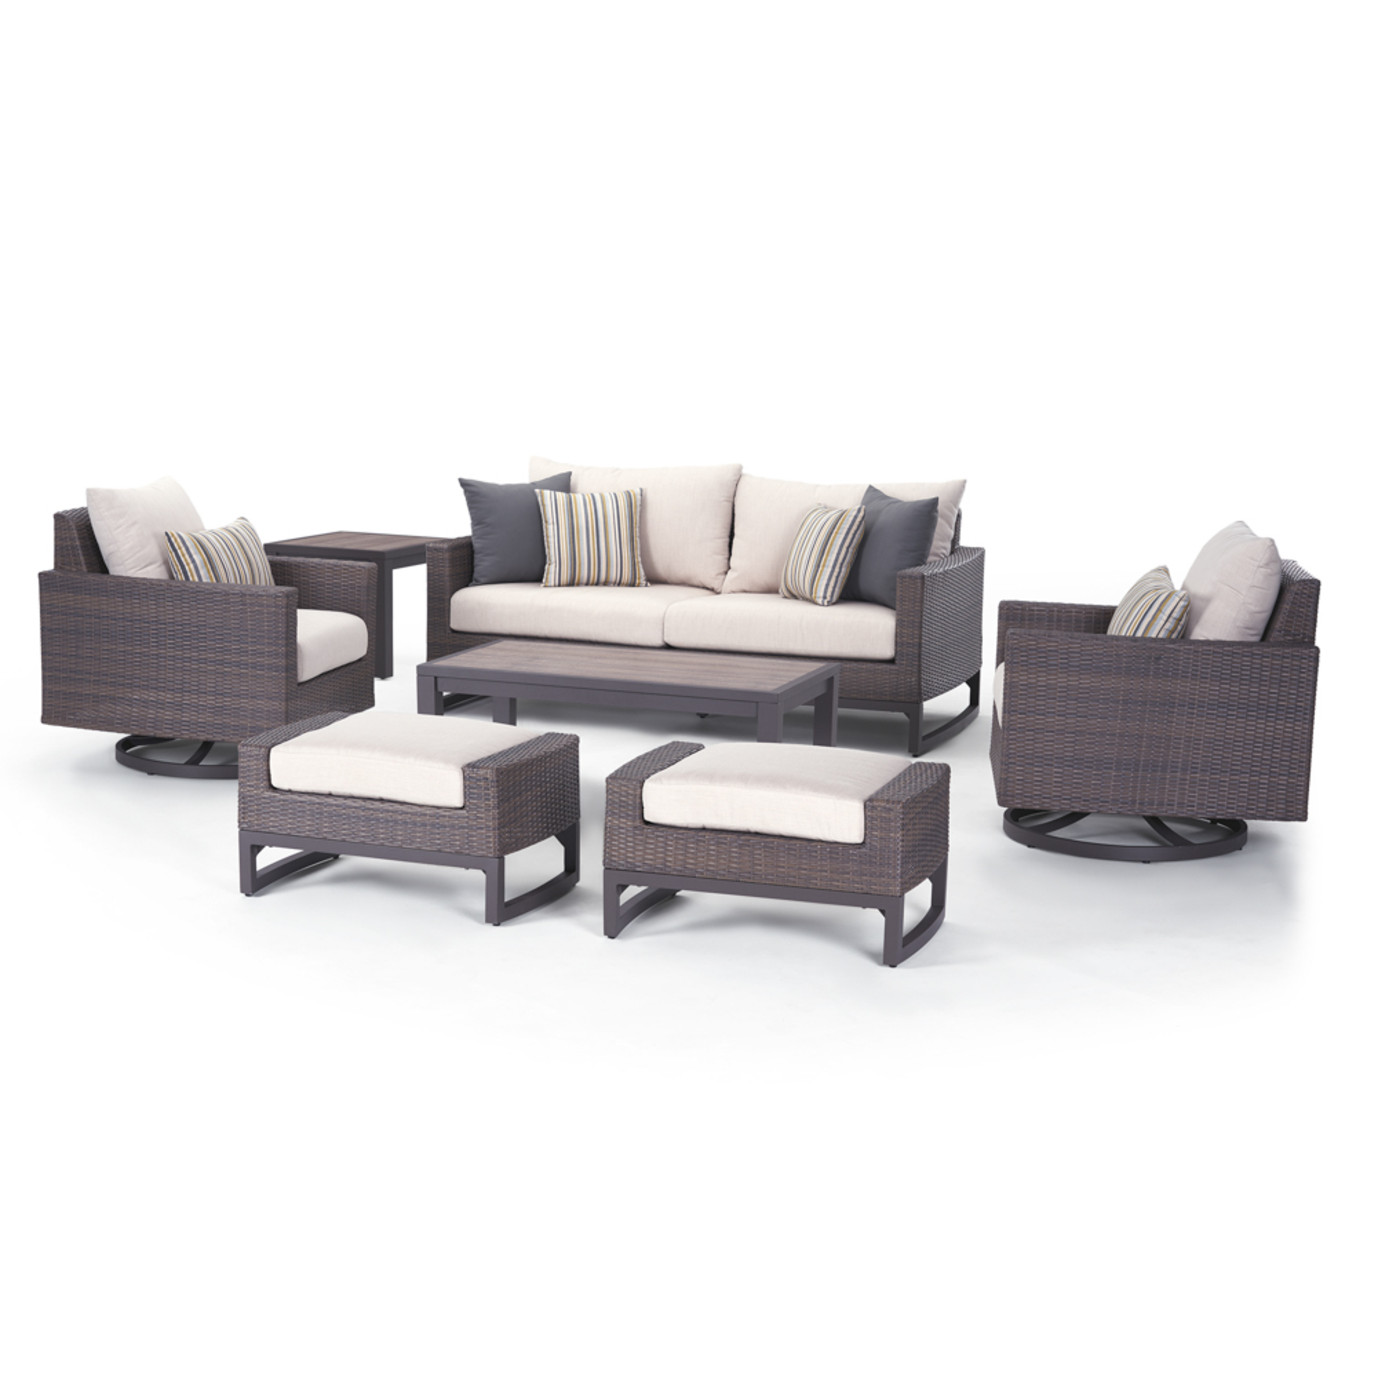 Milea 7 Piece Motion Seating Set - Natural Beige